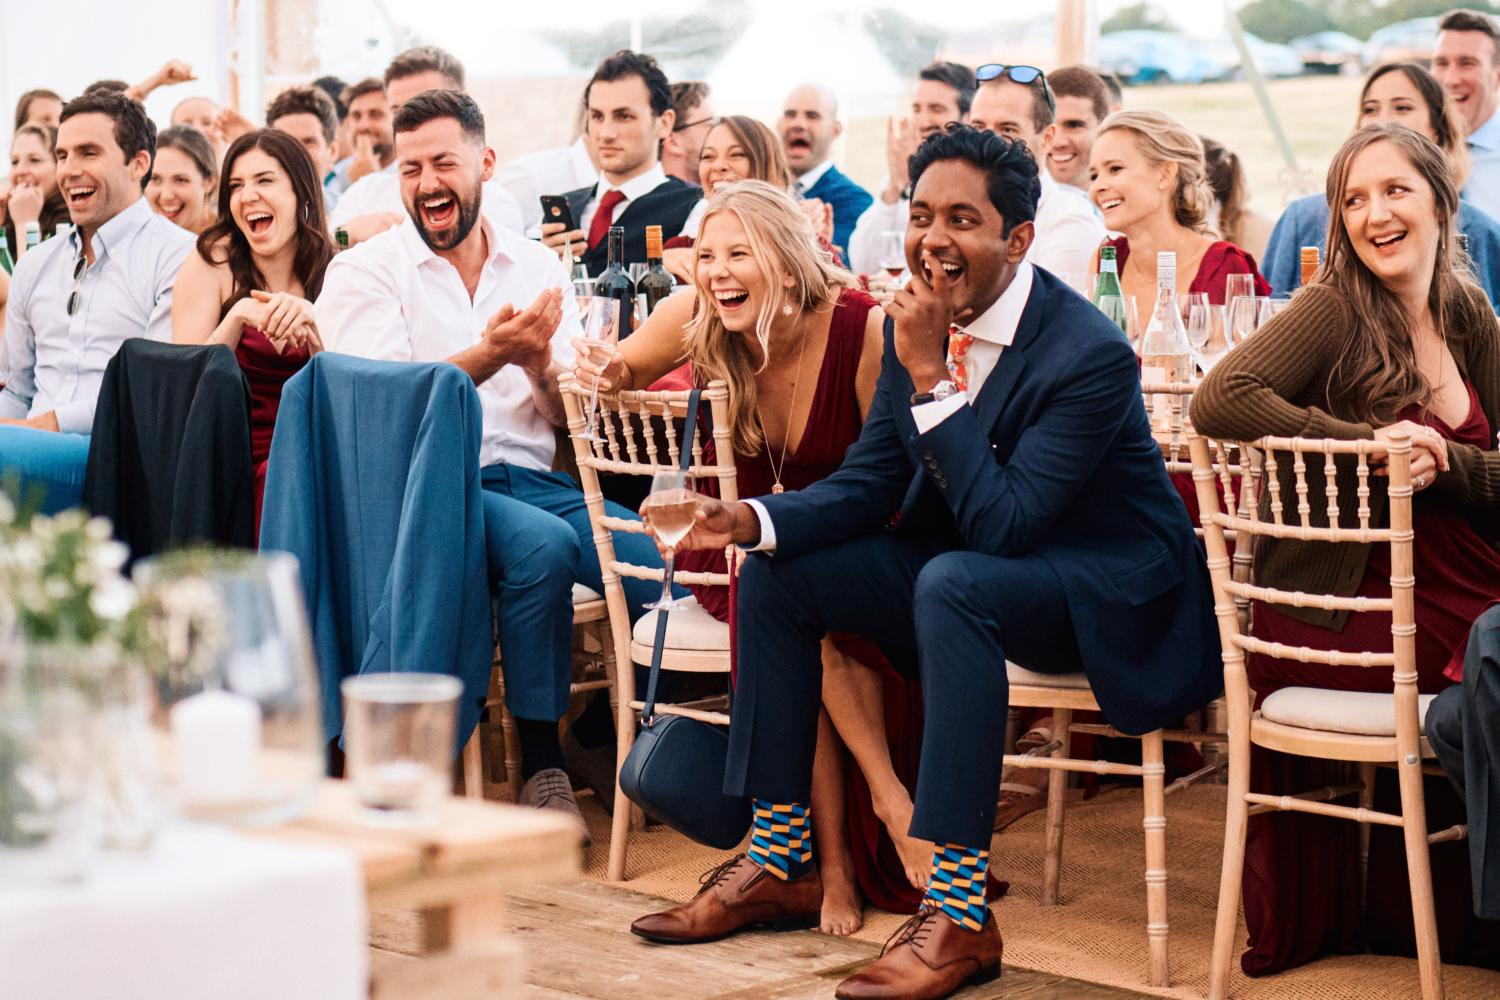 Wedding guests laughing during speeches in a marquee